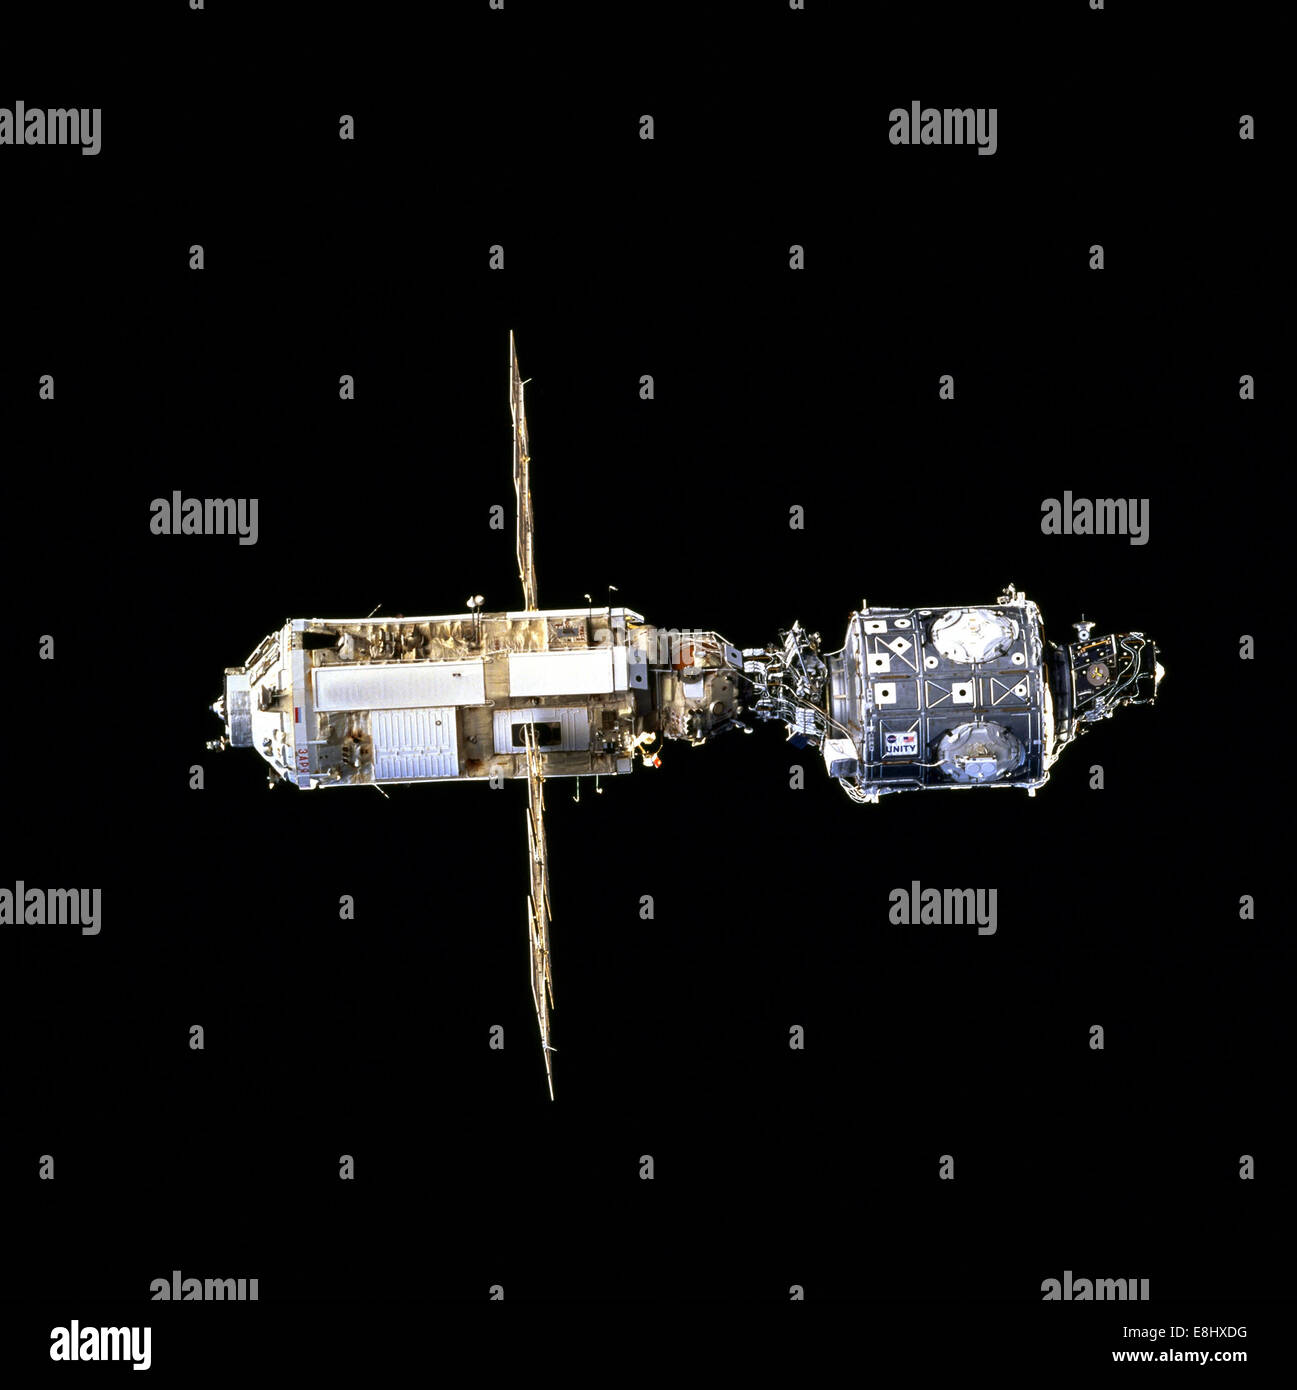 First Assembly Step (Archive NASA, International Space Station - Stock Image